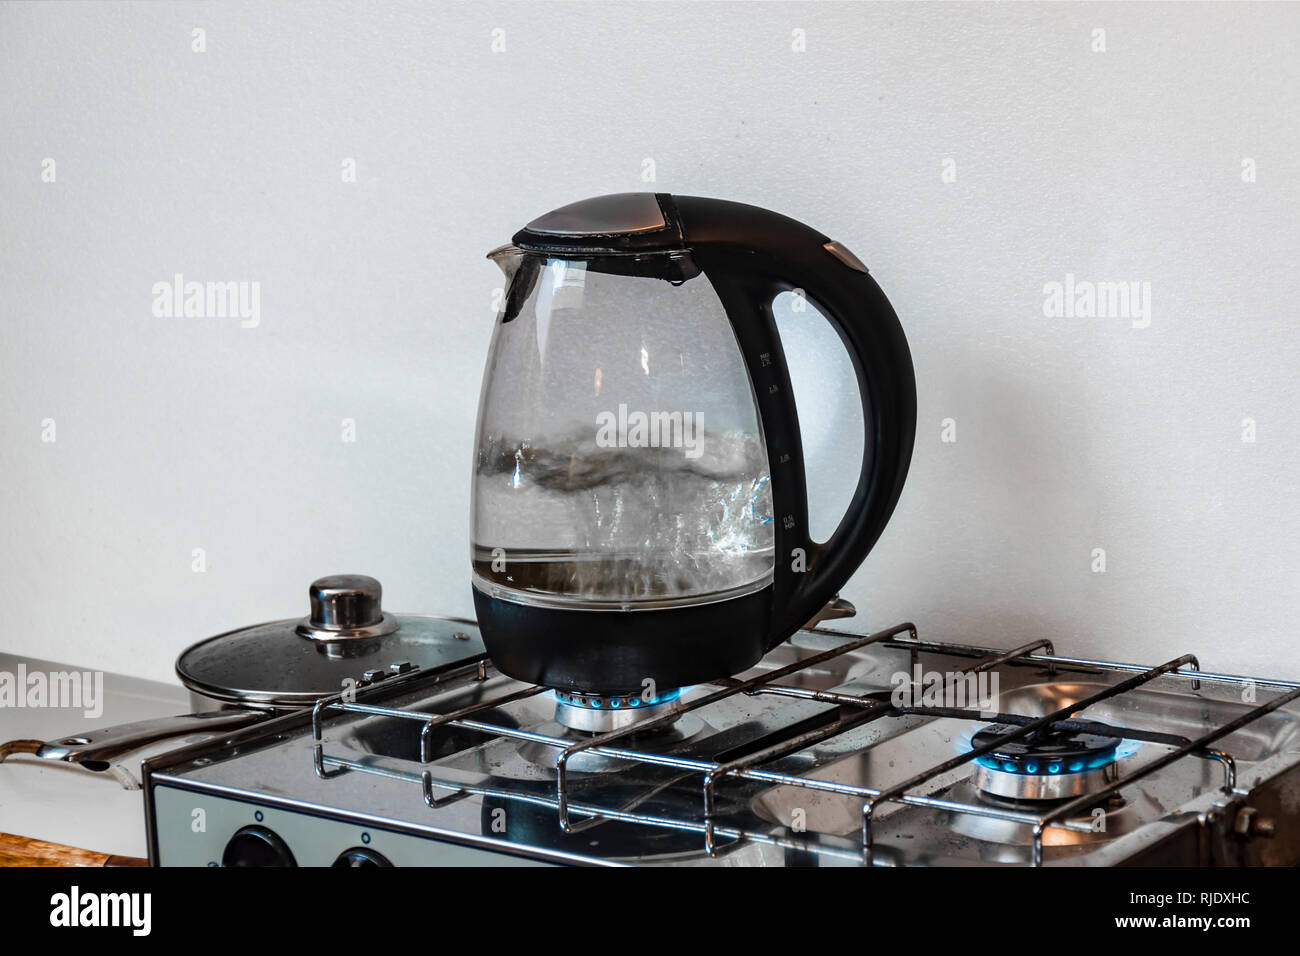 Rapid boiling. Modern electrical kettle boiling at gaz hob. - Stock Image